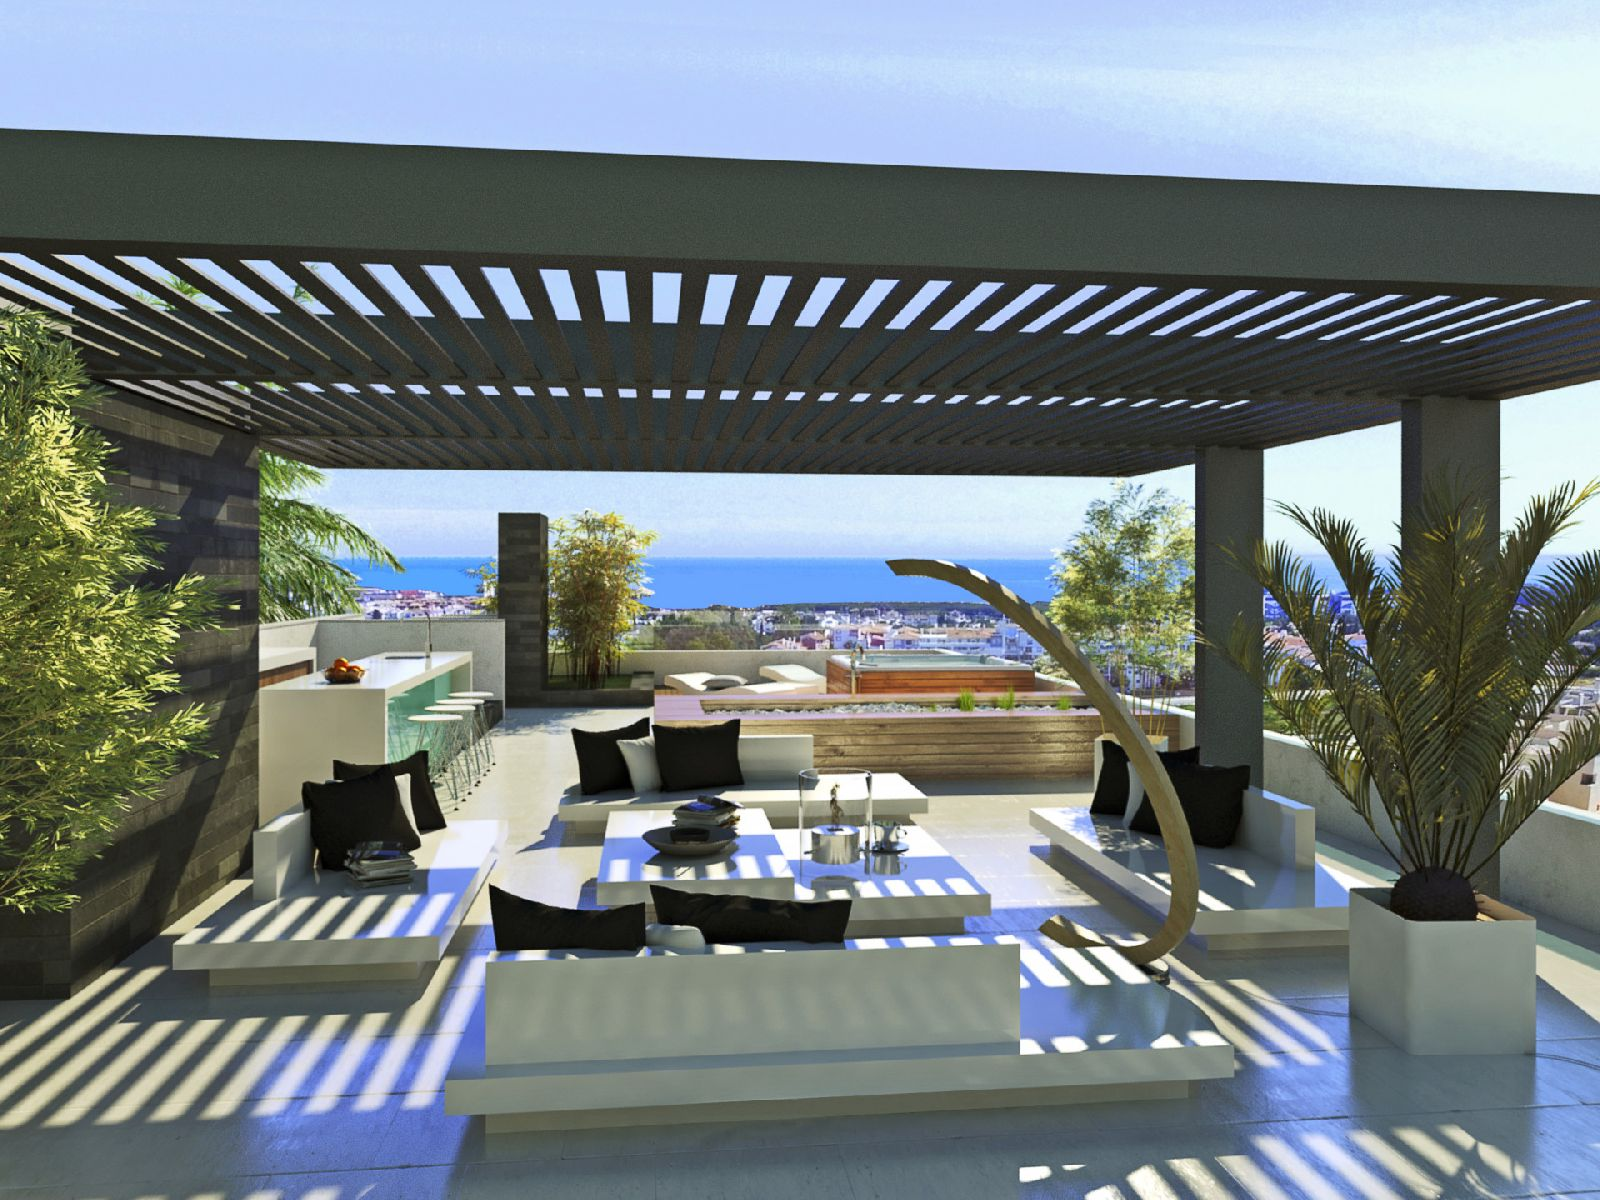 INTELLIGENT VILLAS FROM THE PRESENT TO THE FUTURE - CUSTOME DESIGNED HOUSES IN ESTEPONA GOLF